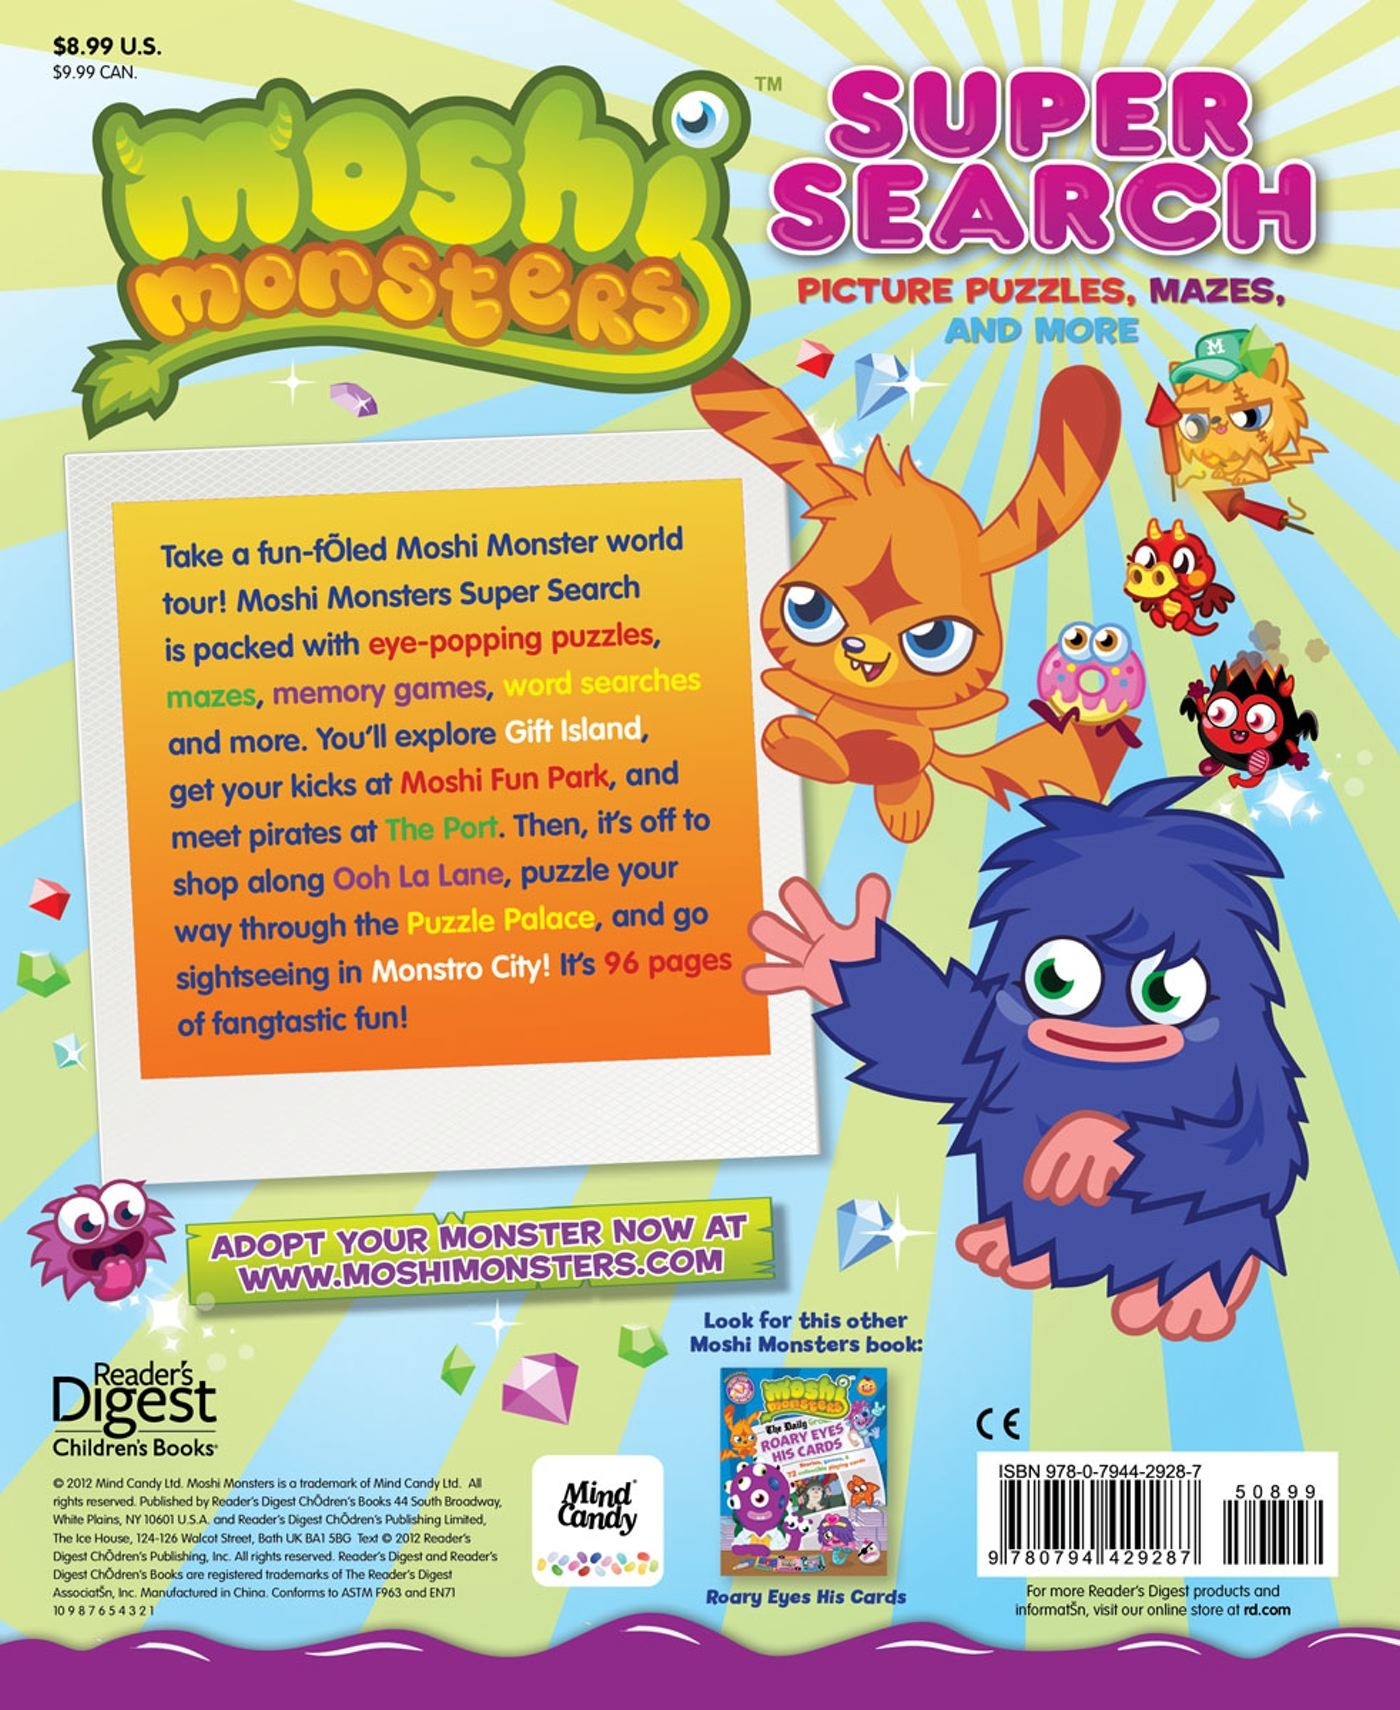 Moshi-monsters-super-search-9780794429287.in04